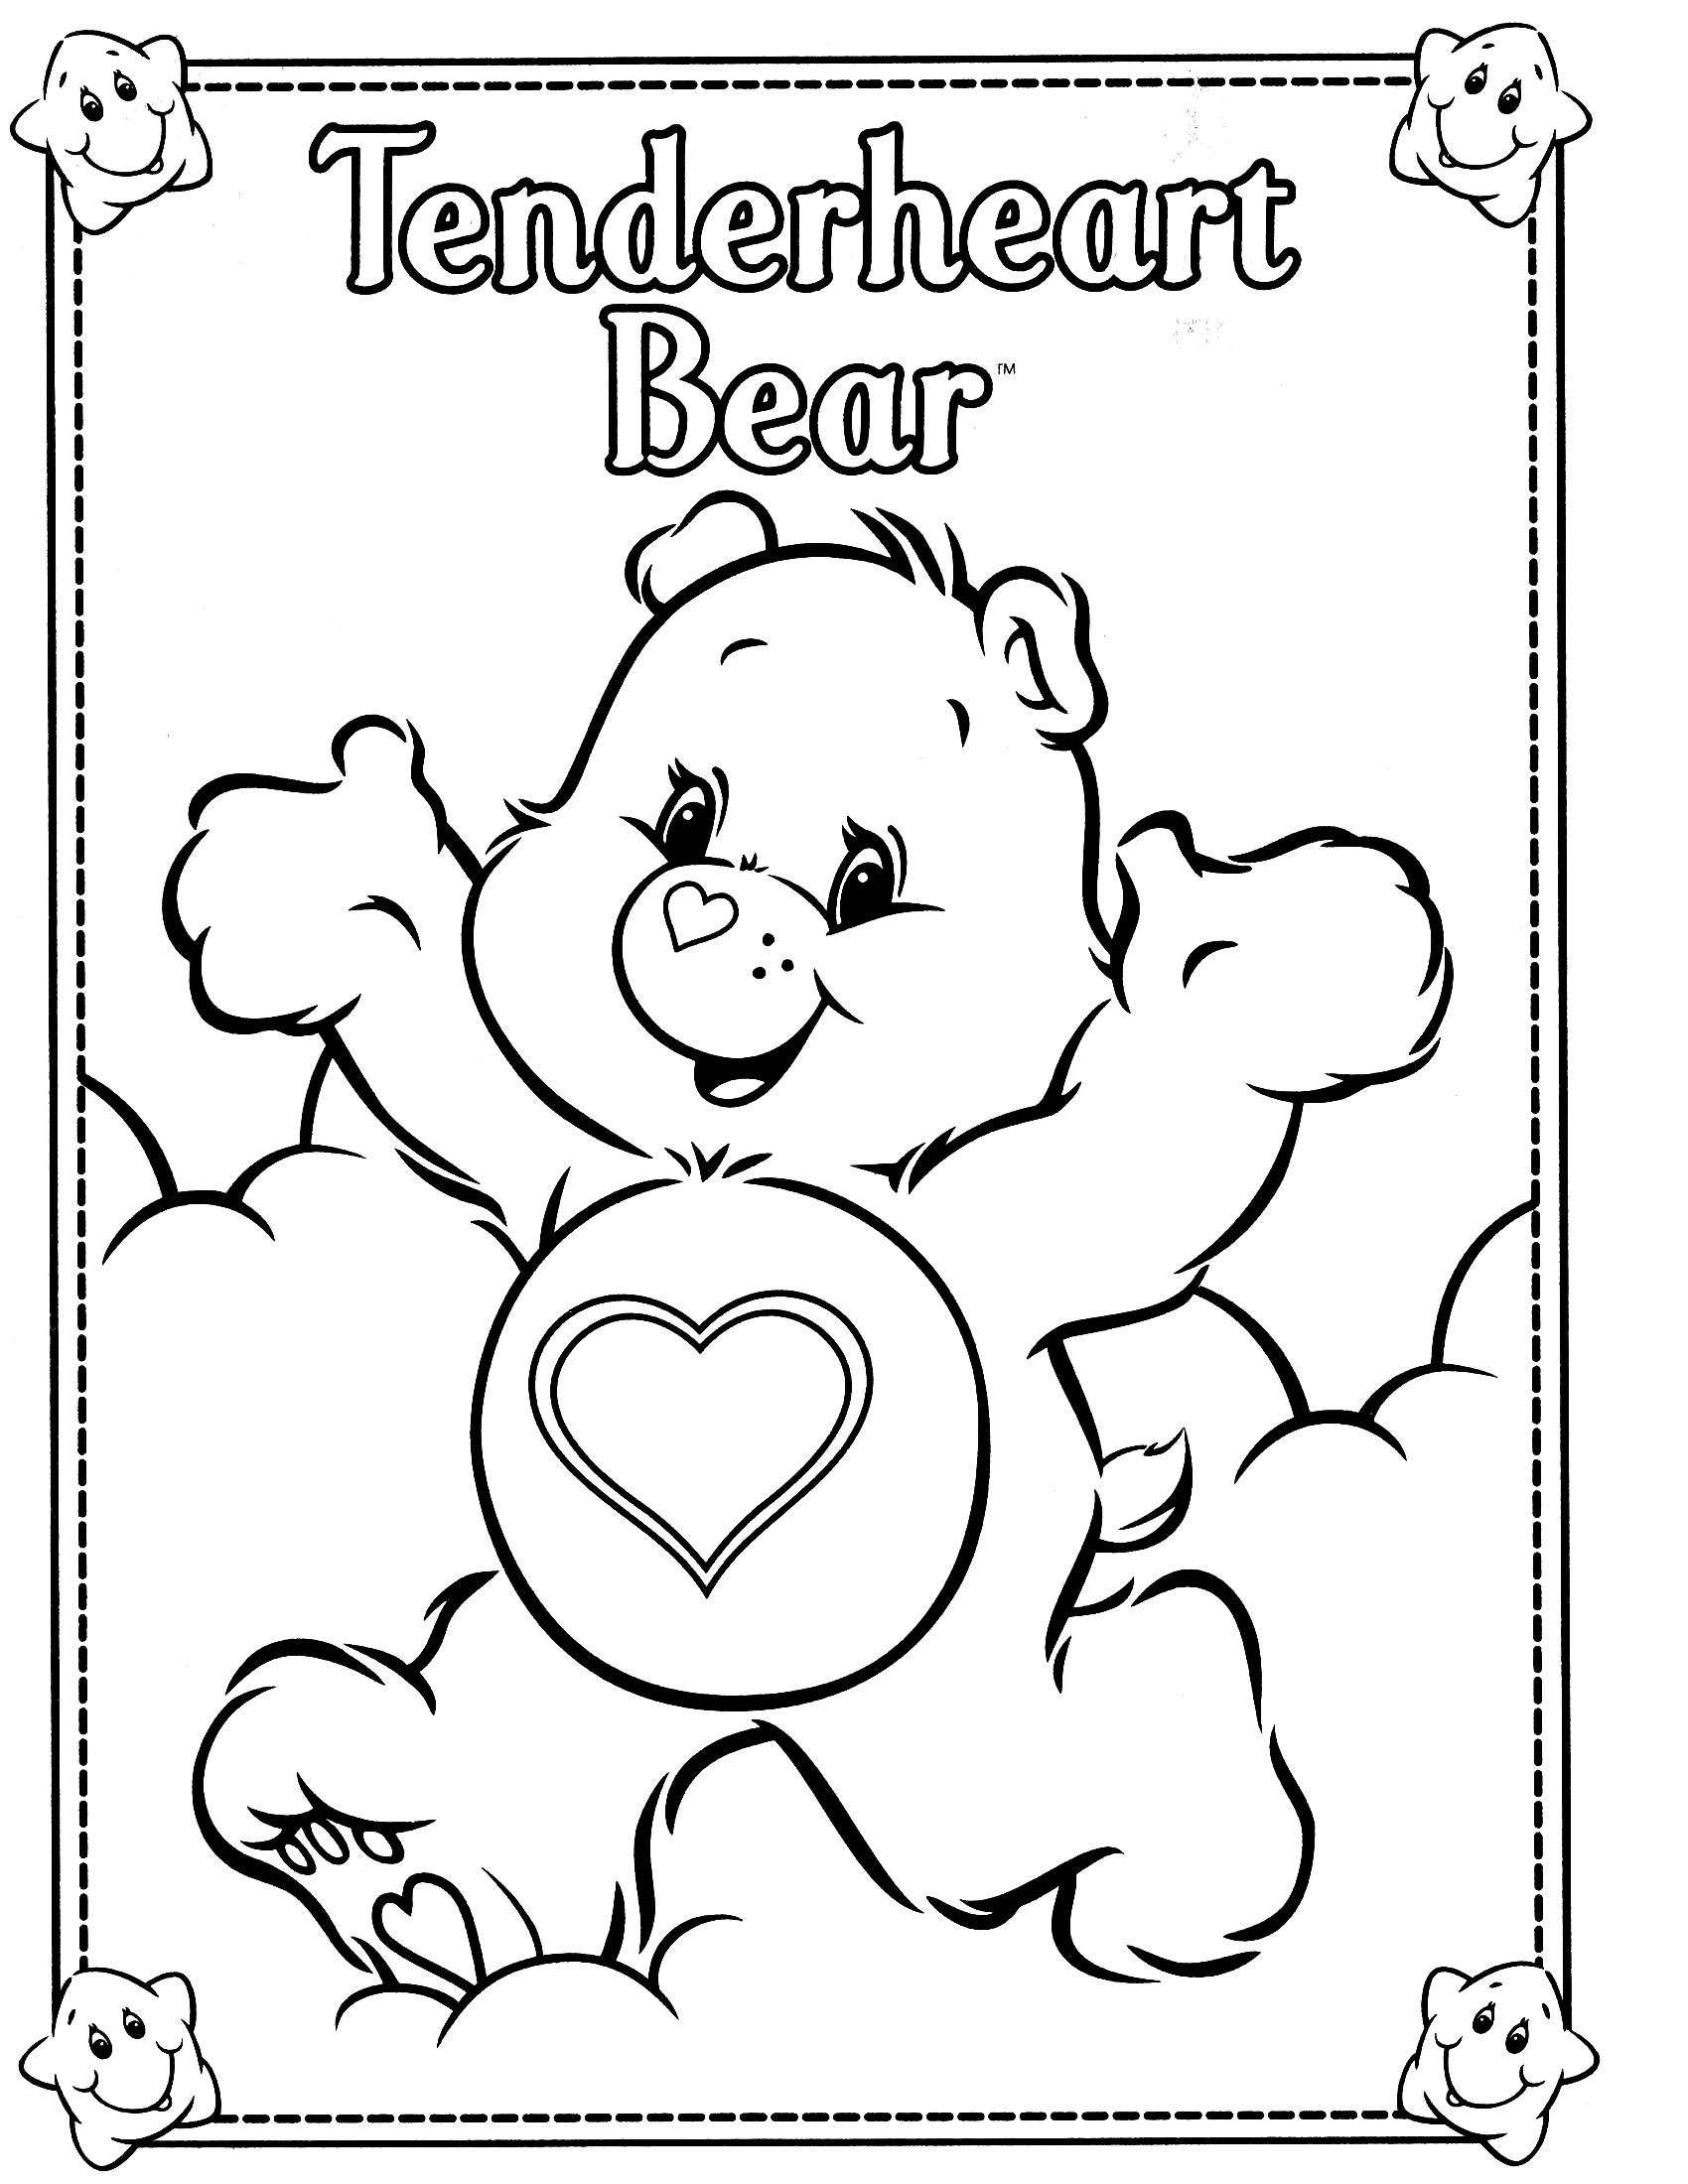 free care bear coloring pages to print for kids download print and